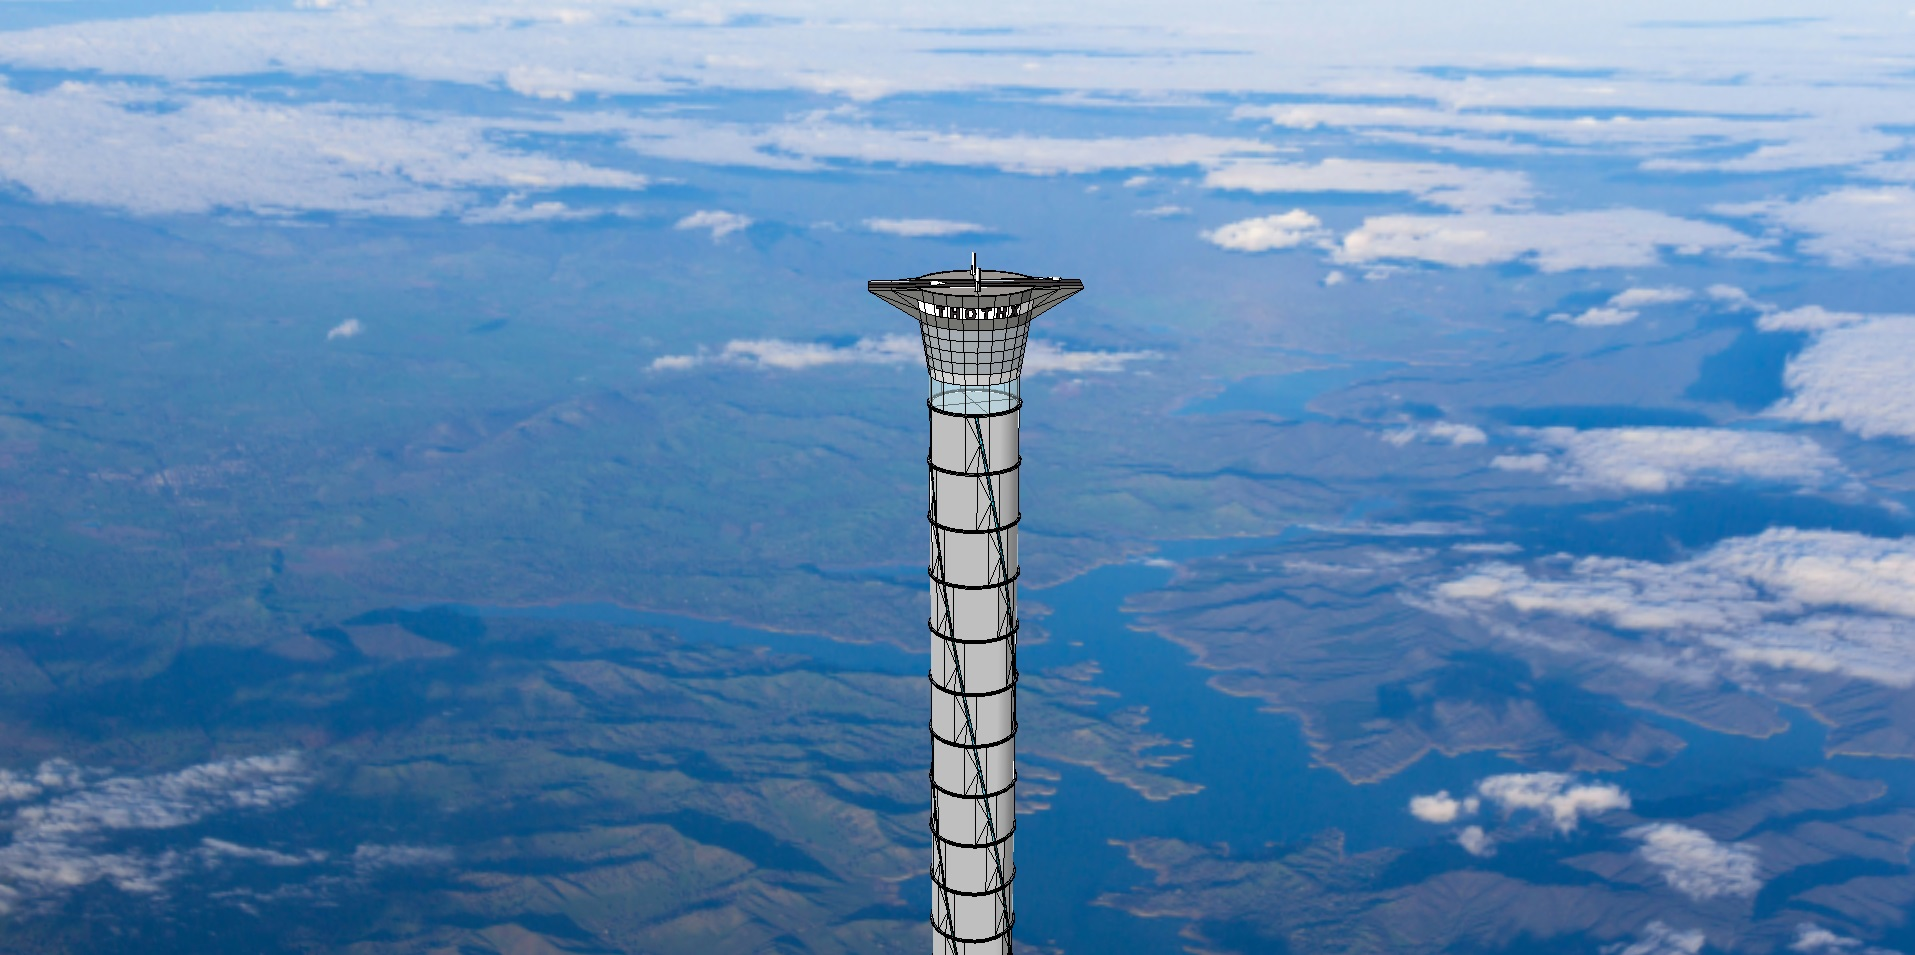 Space elevator. Image source: Thoth Technology